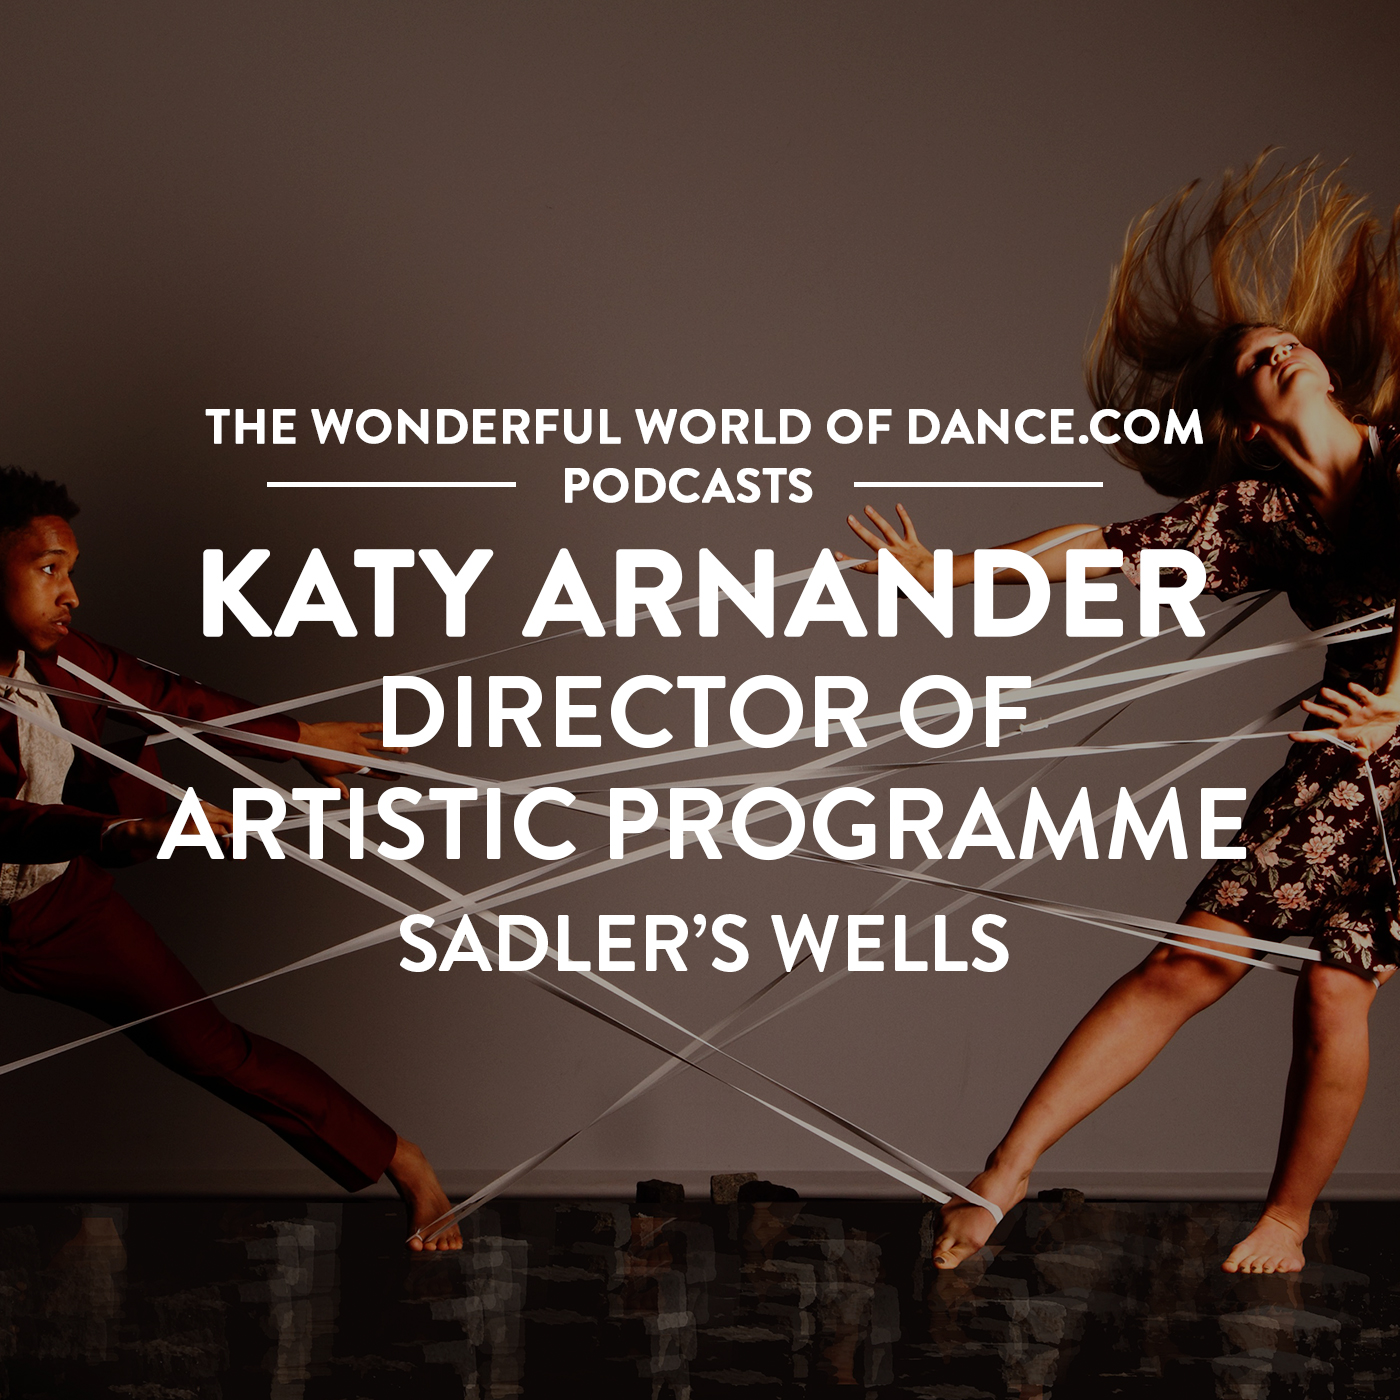 Sadler's Wells, Katy Arnander, Director of Artistic Programme